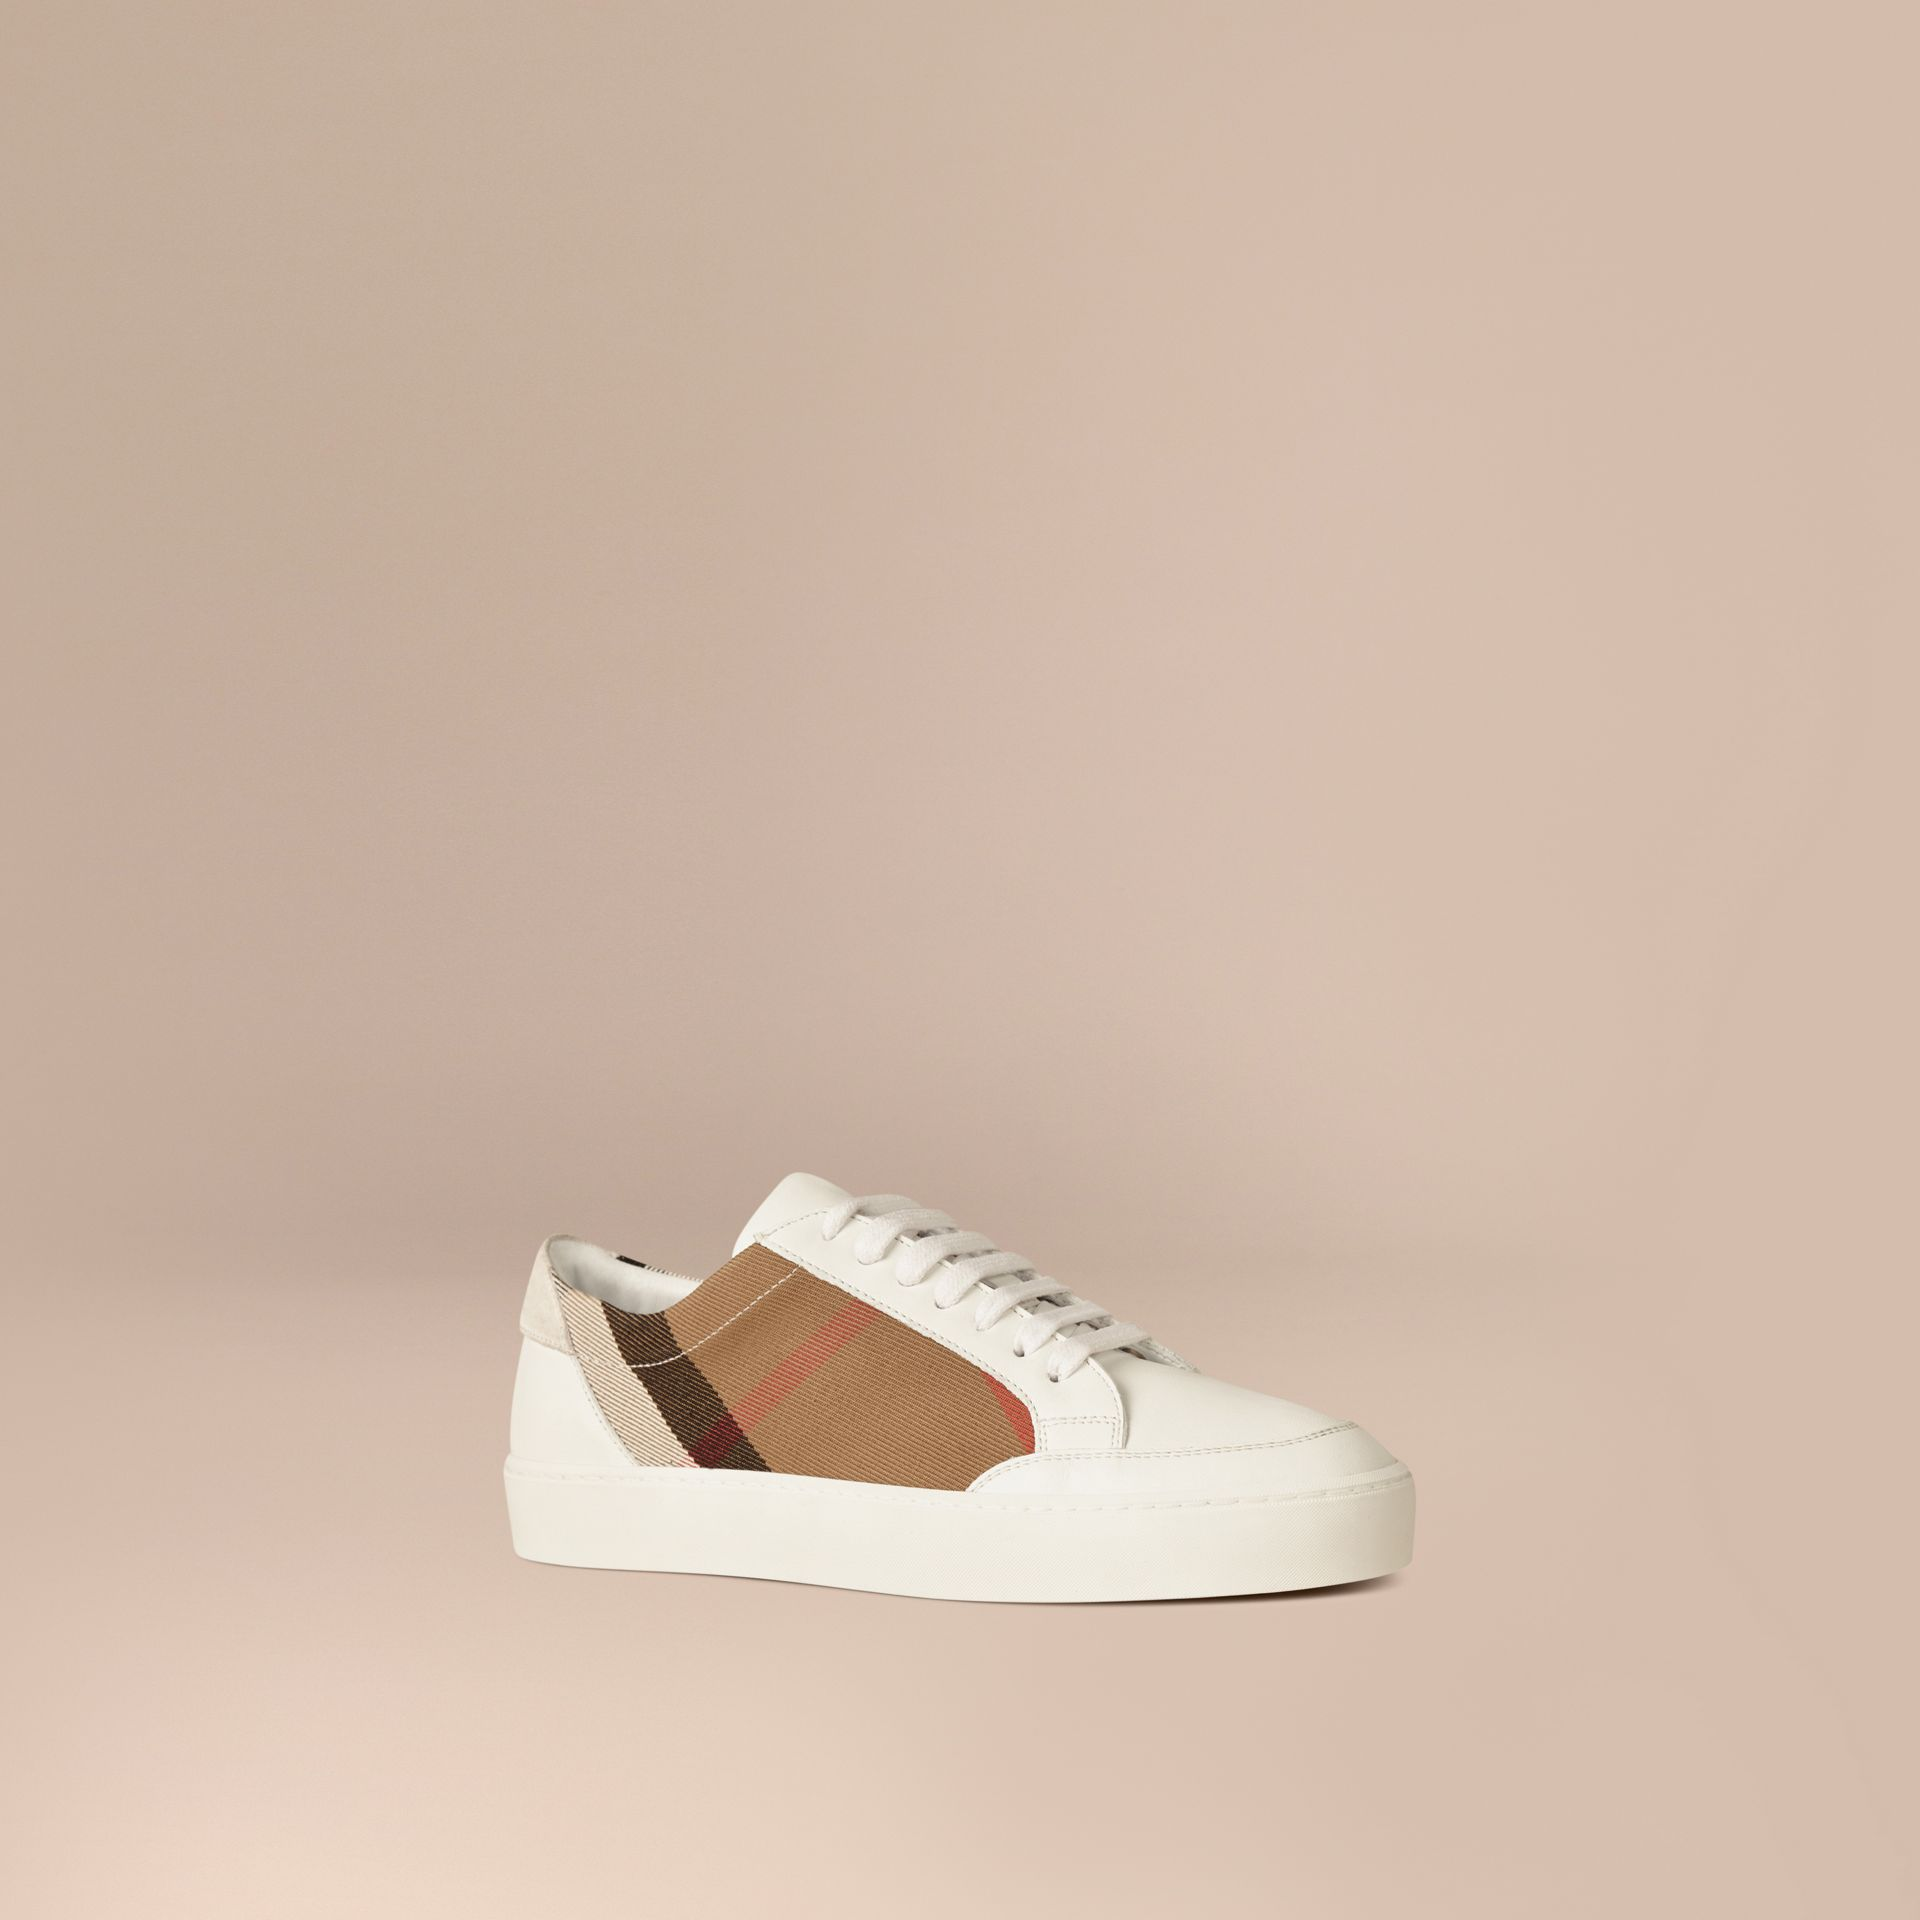 House check/optic white House Check and Leather Sneakers Check/optic White - gallery image 1